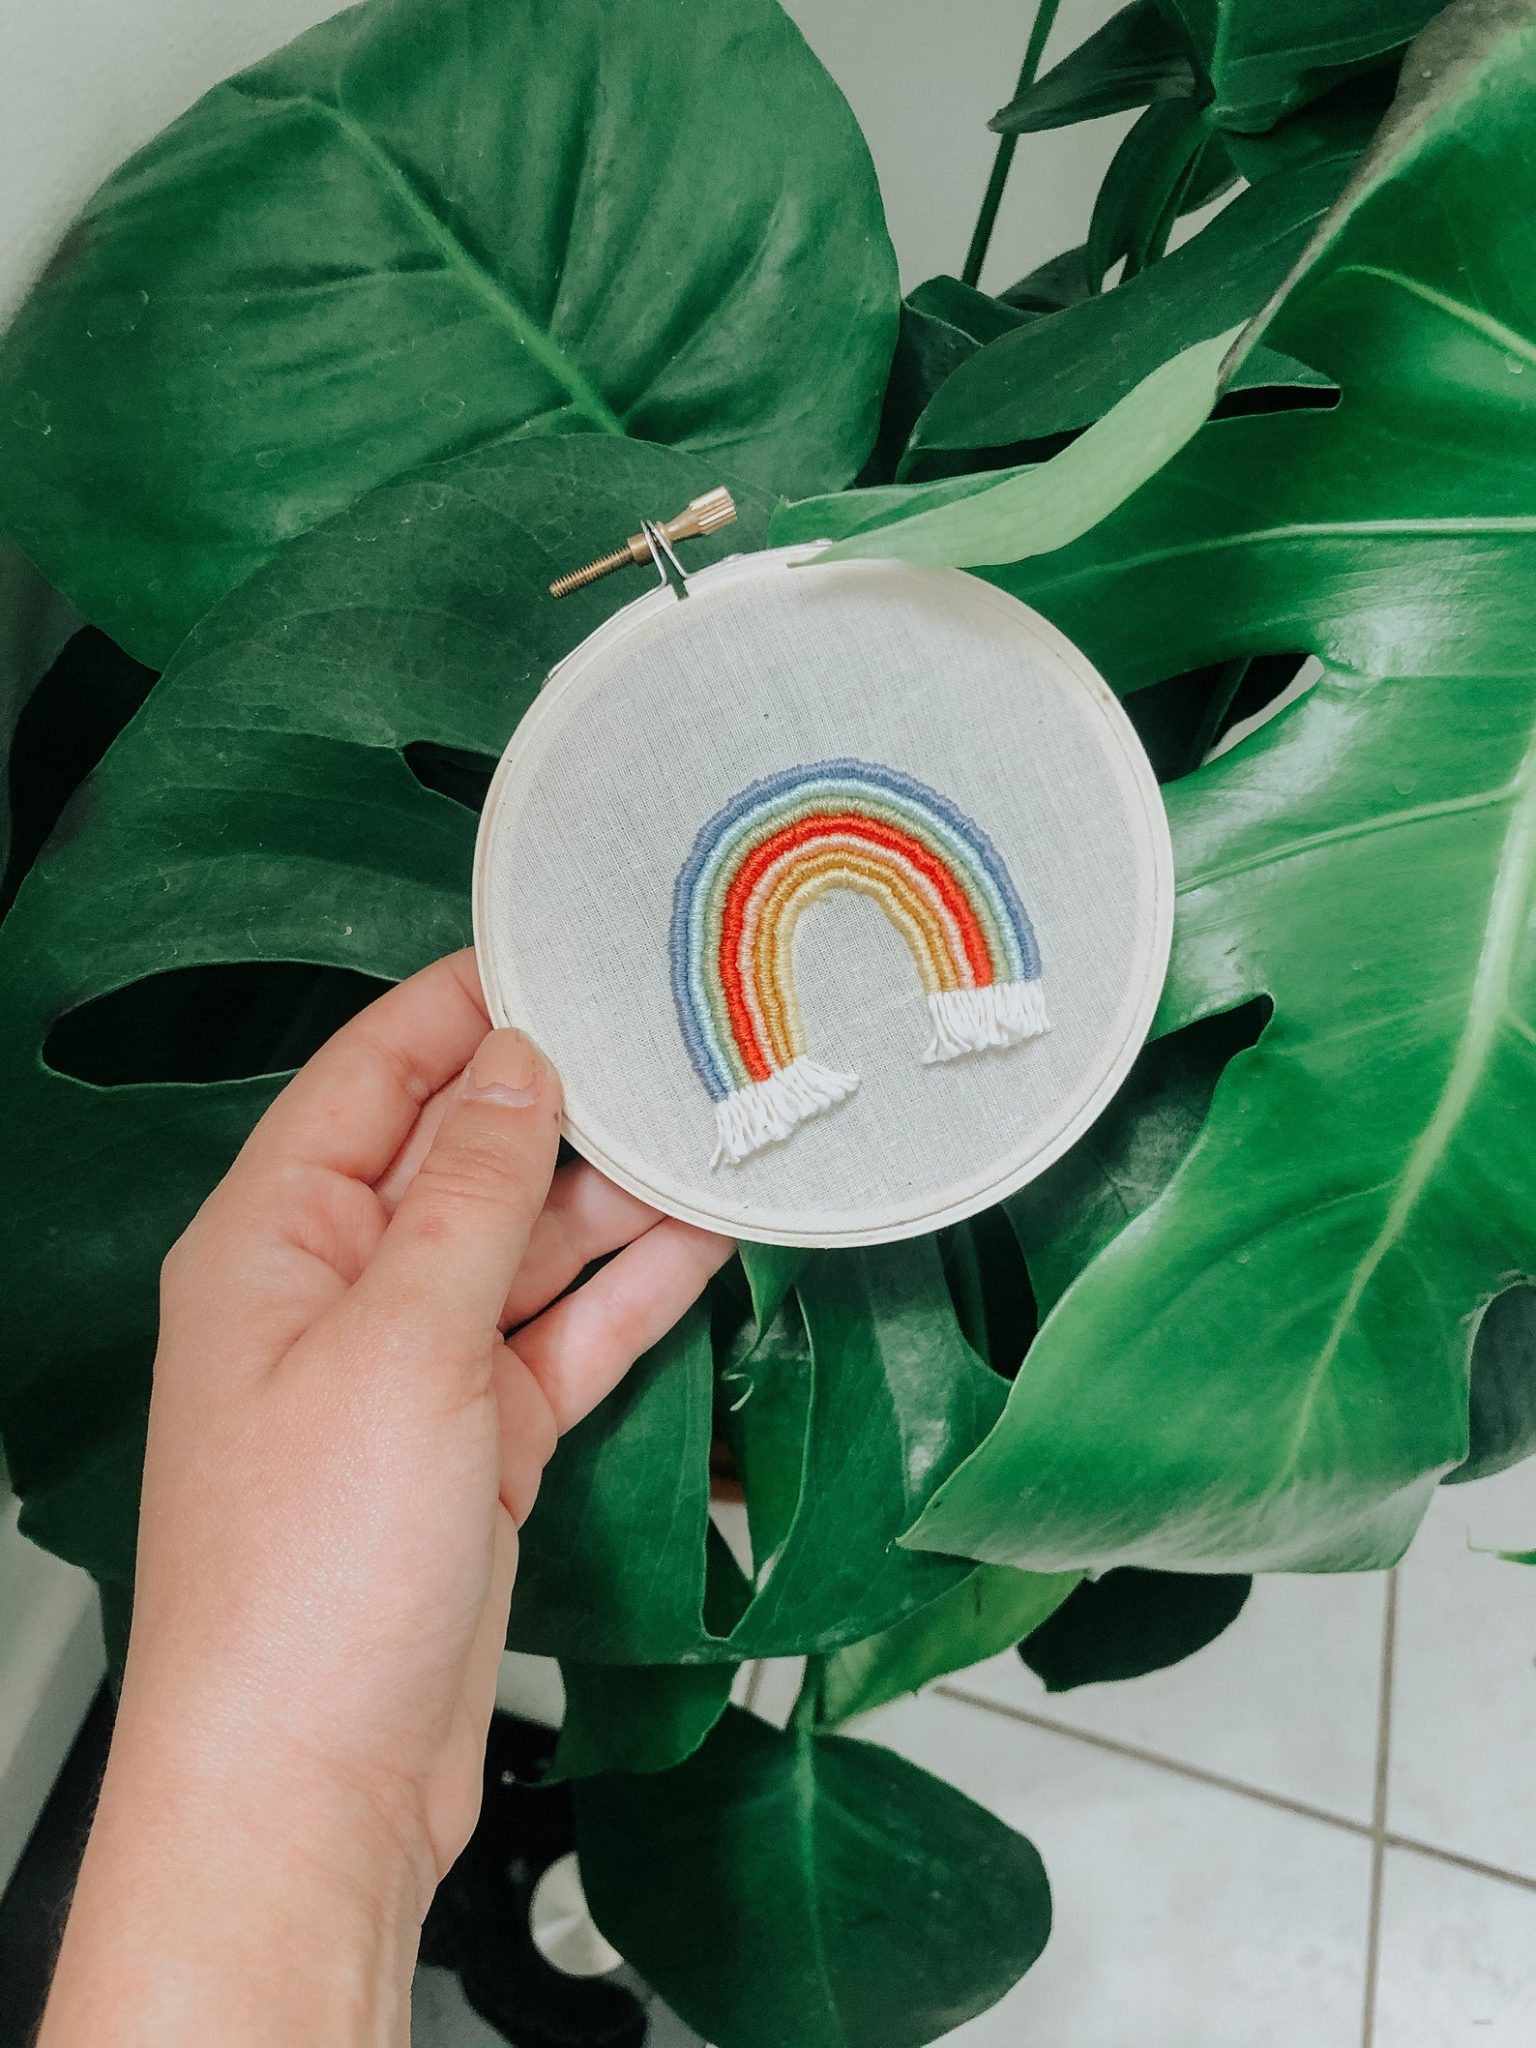 rainbow embroidered on neutral fabric in hoop with leaves in the background